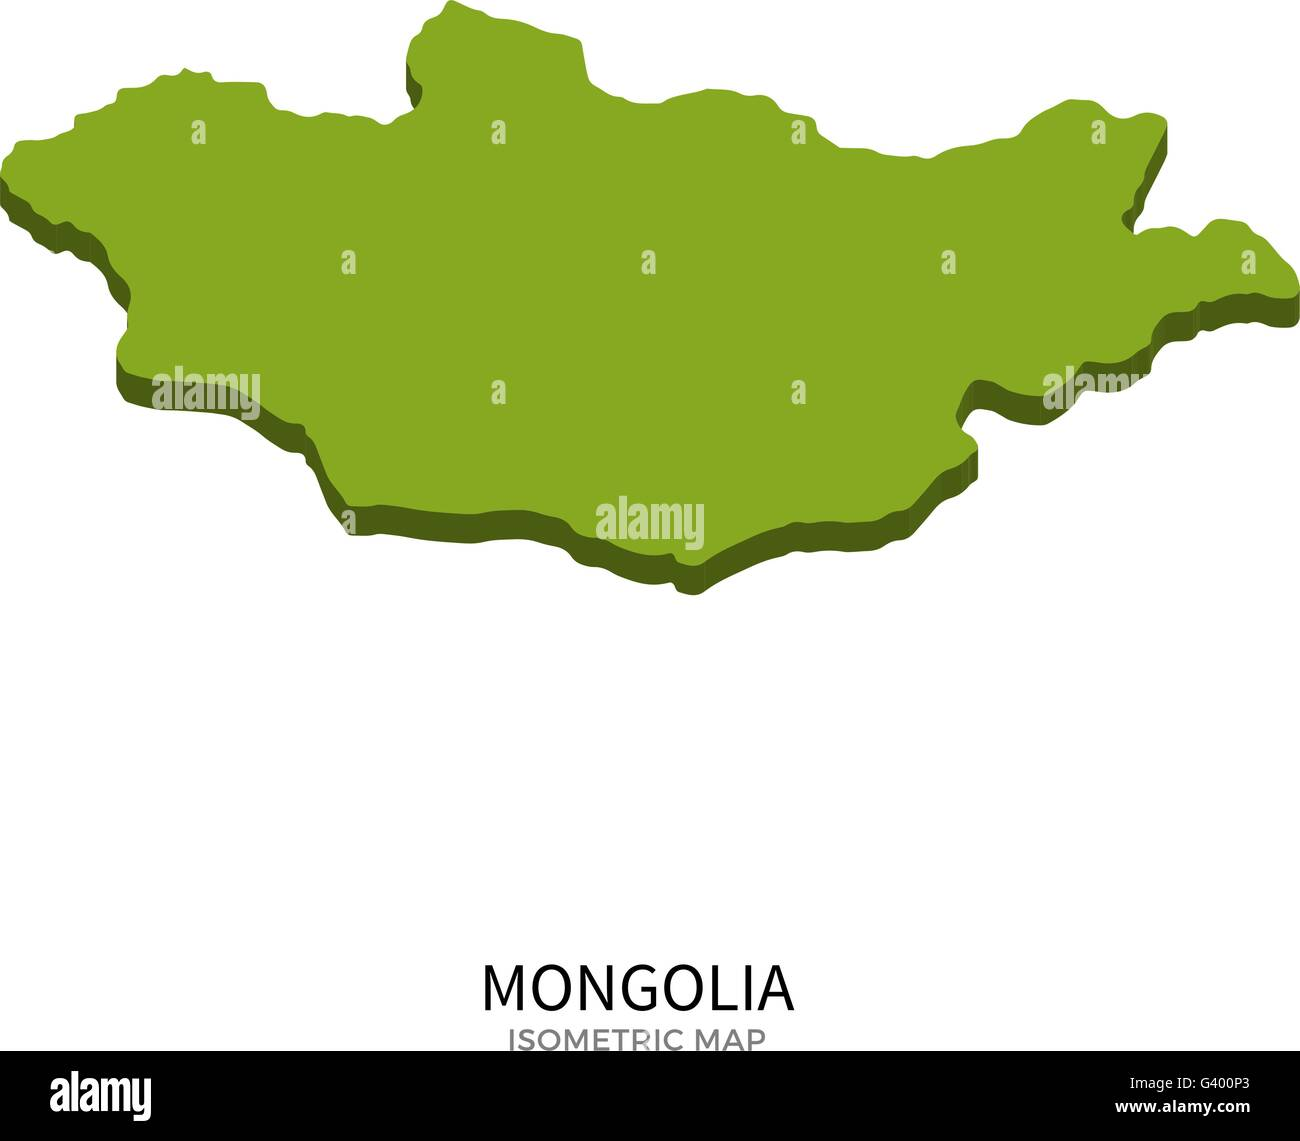 Isometric map of Mongolia detailed vector illustration - Stock Vector